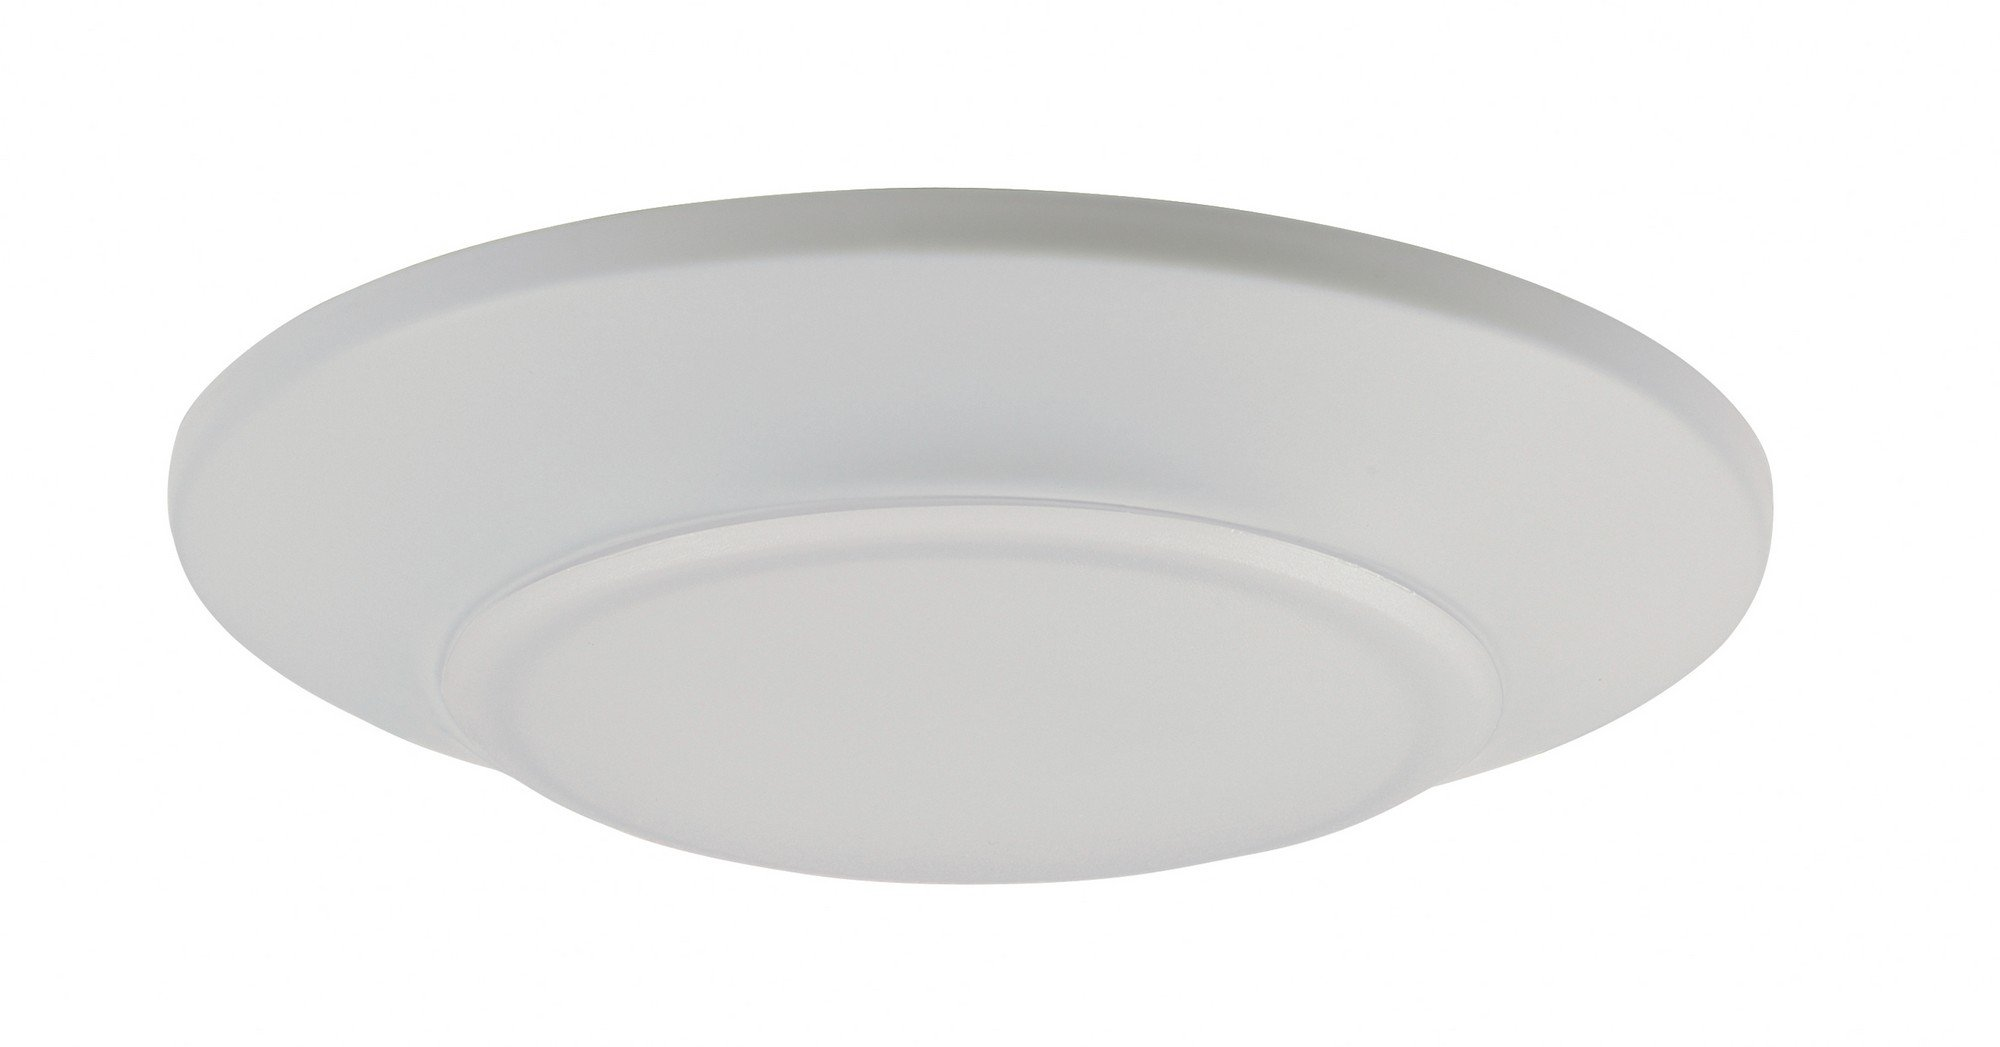 Maxim 57622WTWT Diverse LED Mini Flush Mount 2700K, White Finish, White Glass, PCB LED Bulb , 18W Max., Wet Safety Rating, Shade Material, 1355 Rated Lumens